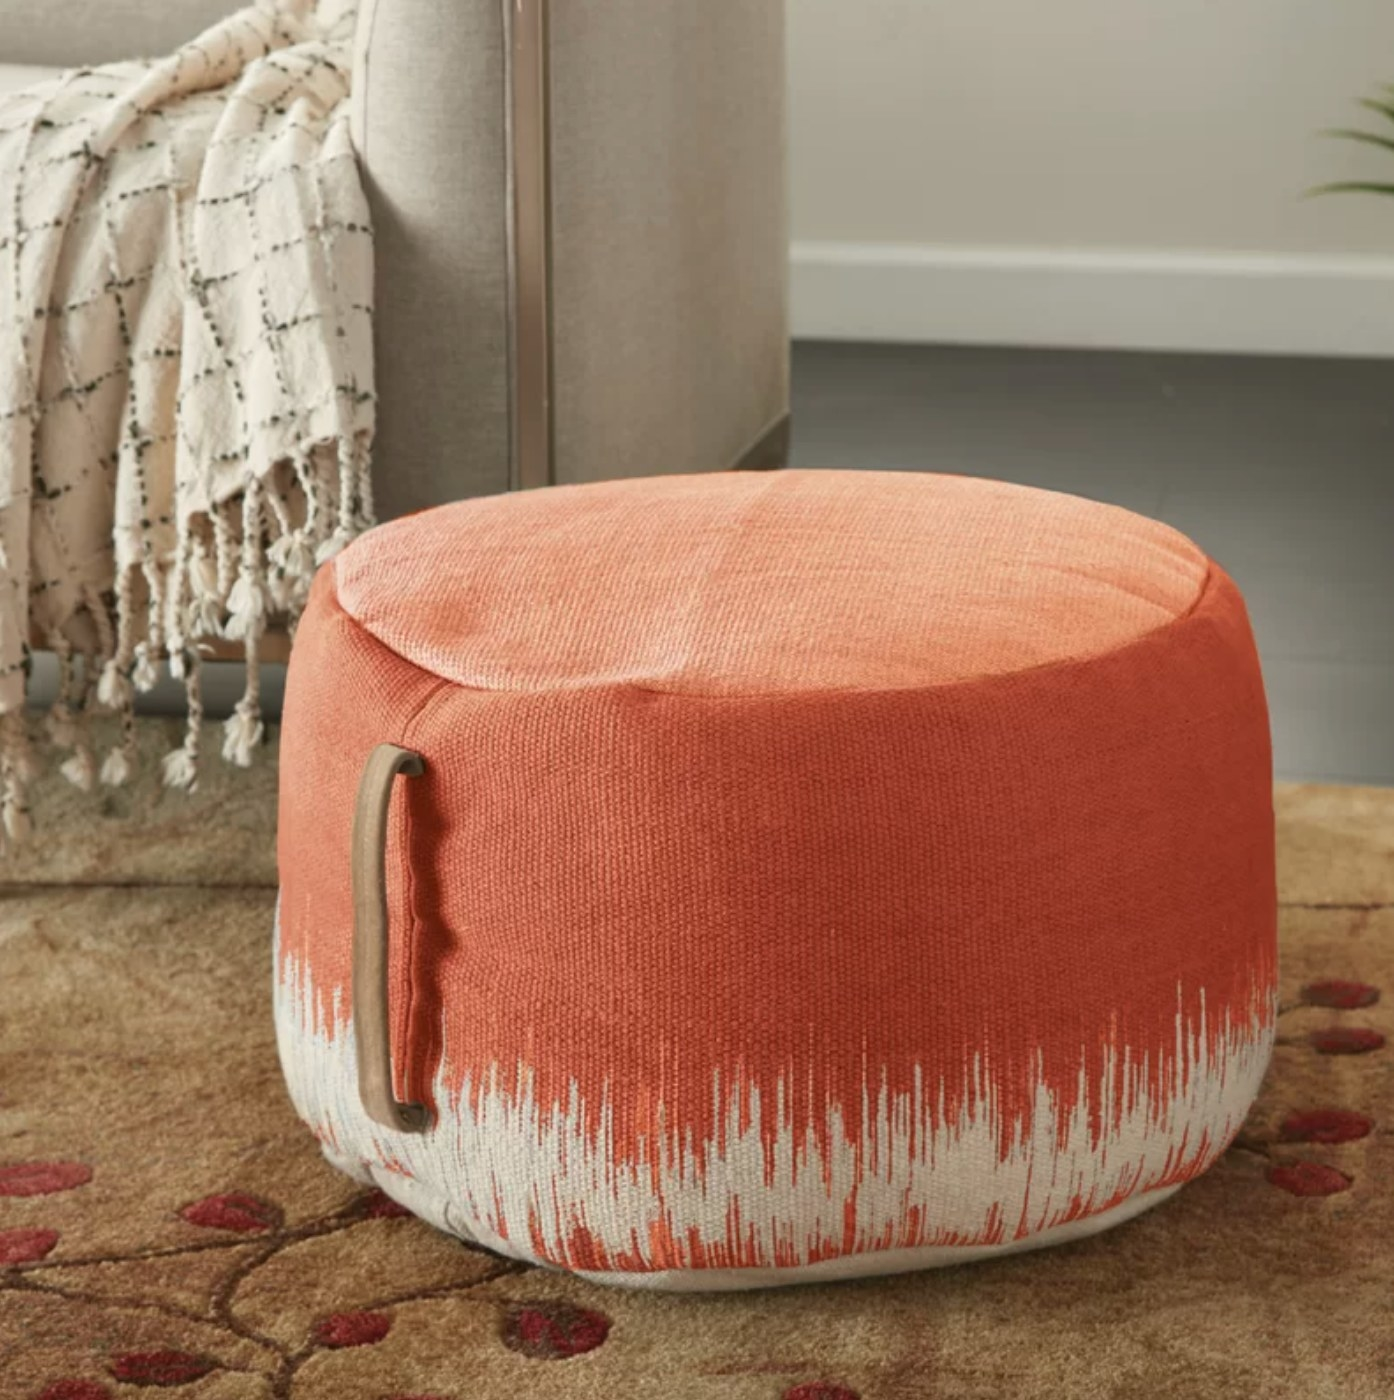 The round ottoman pouf in clay